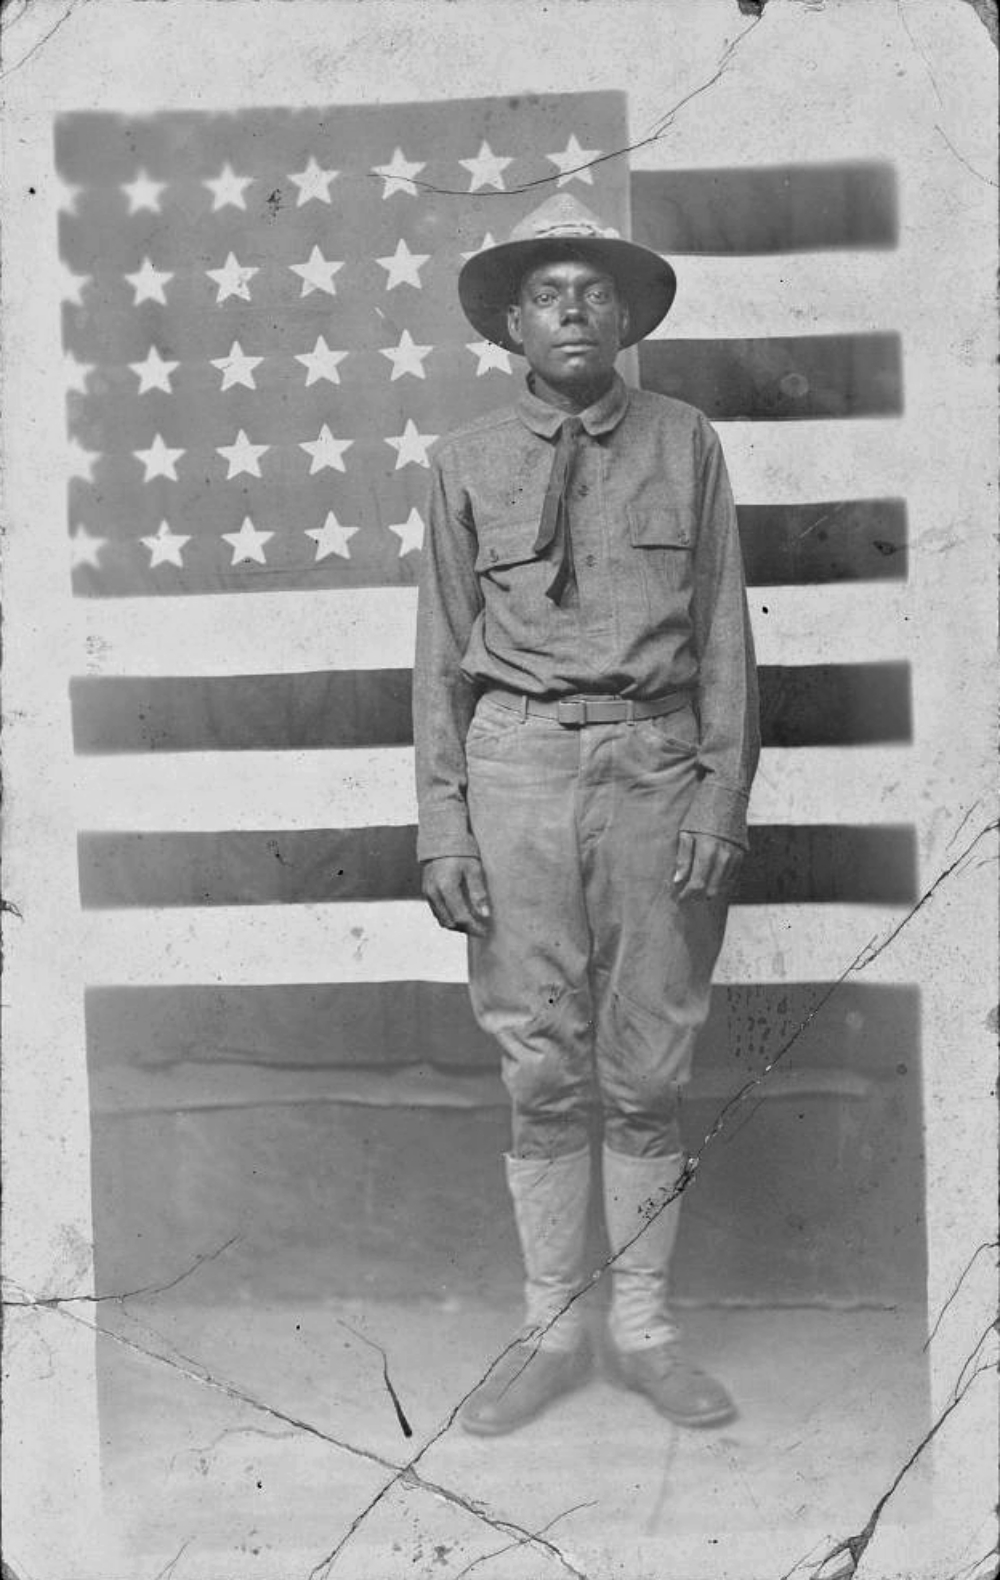 WWI soldier in uniform standing in front of American flag.